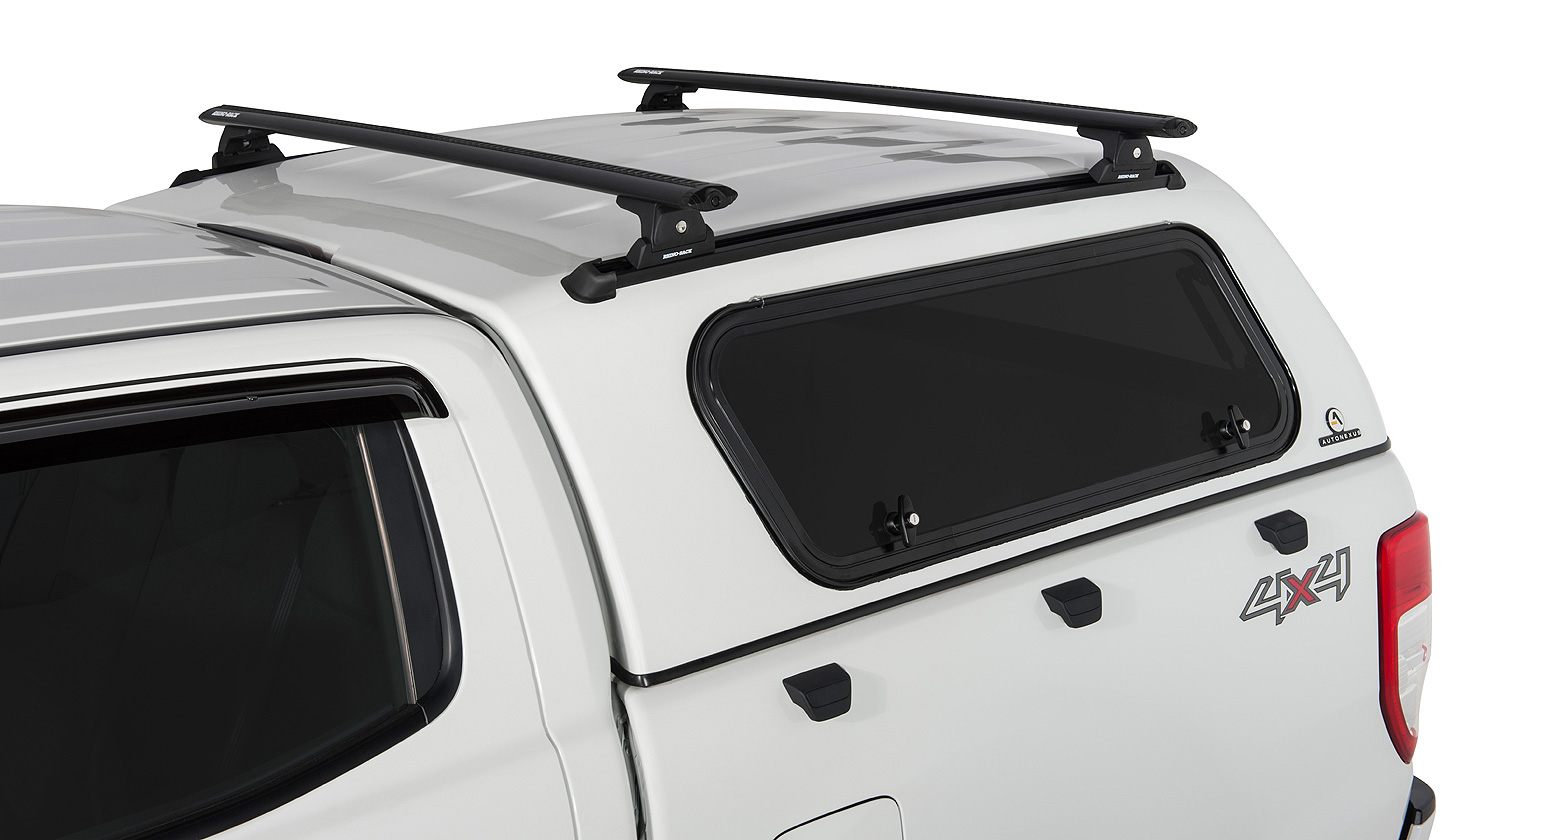 Auto Nexus Canopy - Vortex RLT600 Black 2 Bar Roof Rack | Rhino-Rack  sc 1 st  Rhino-Rack : canopy roof racks bars - memphite.com